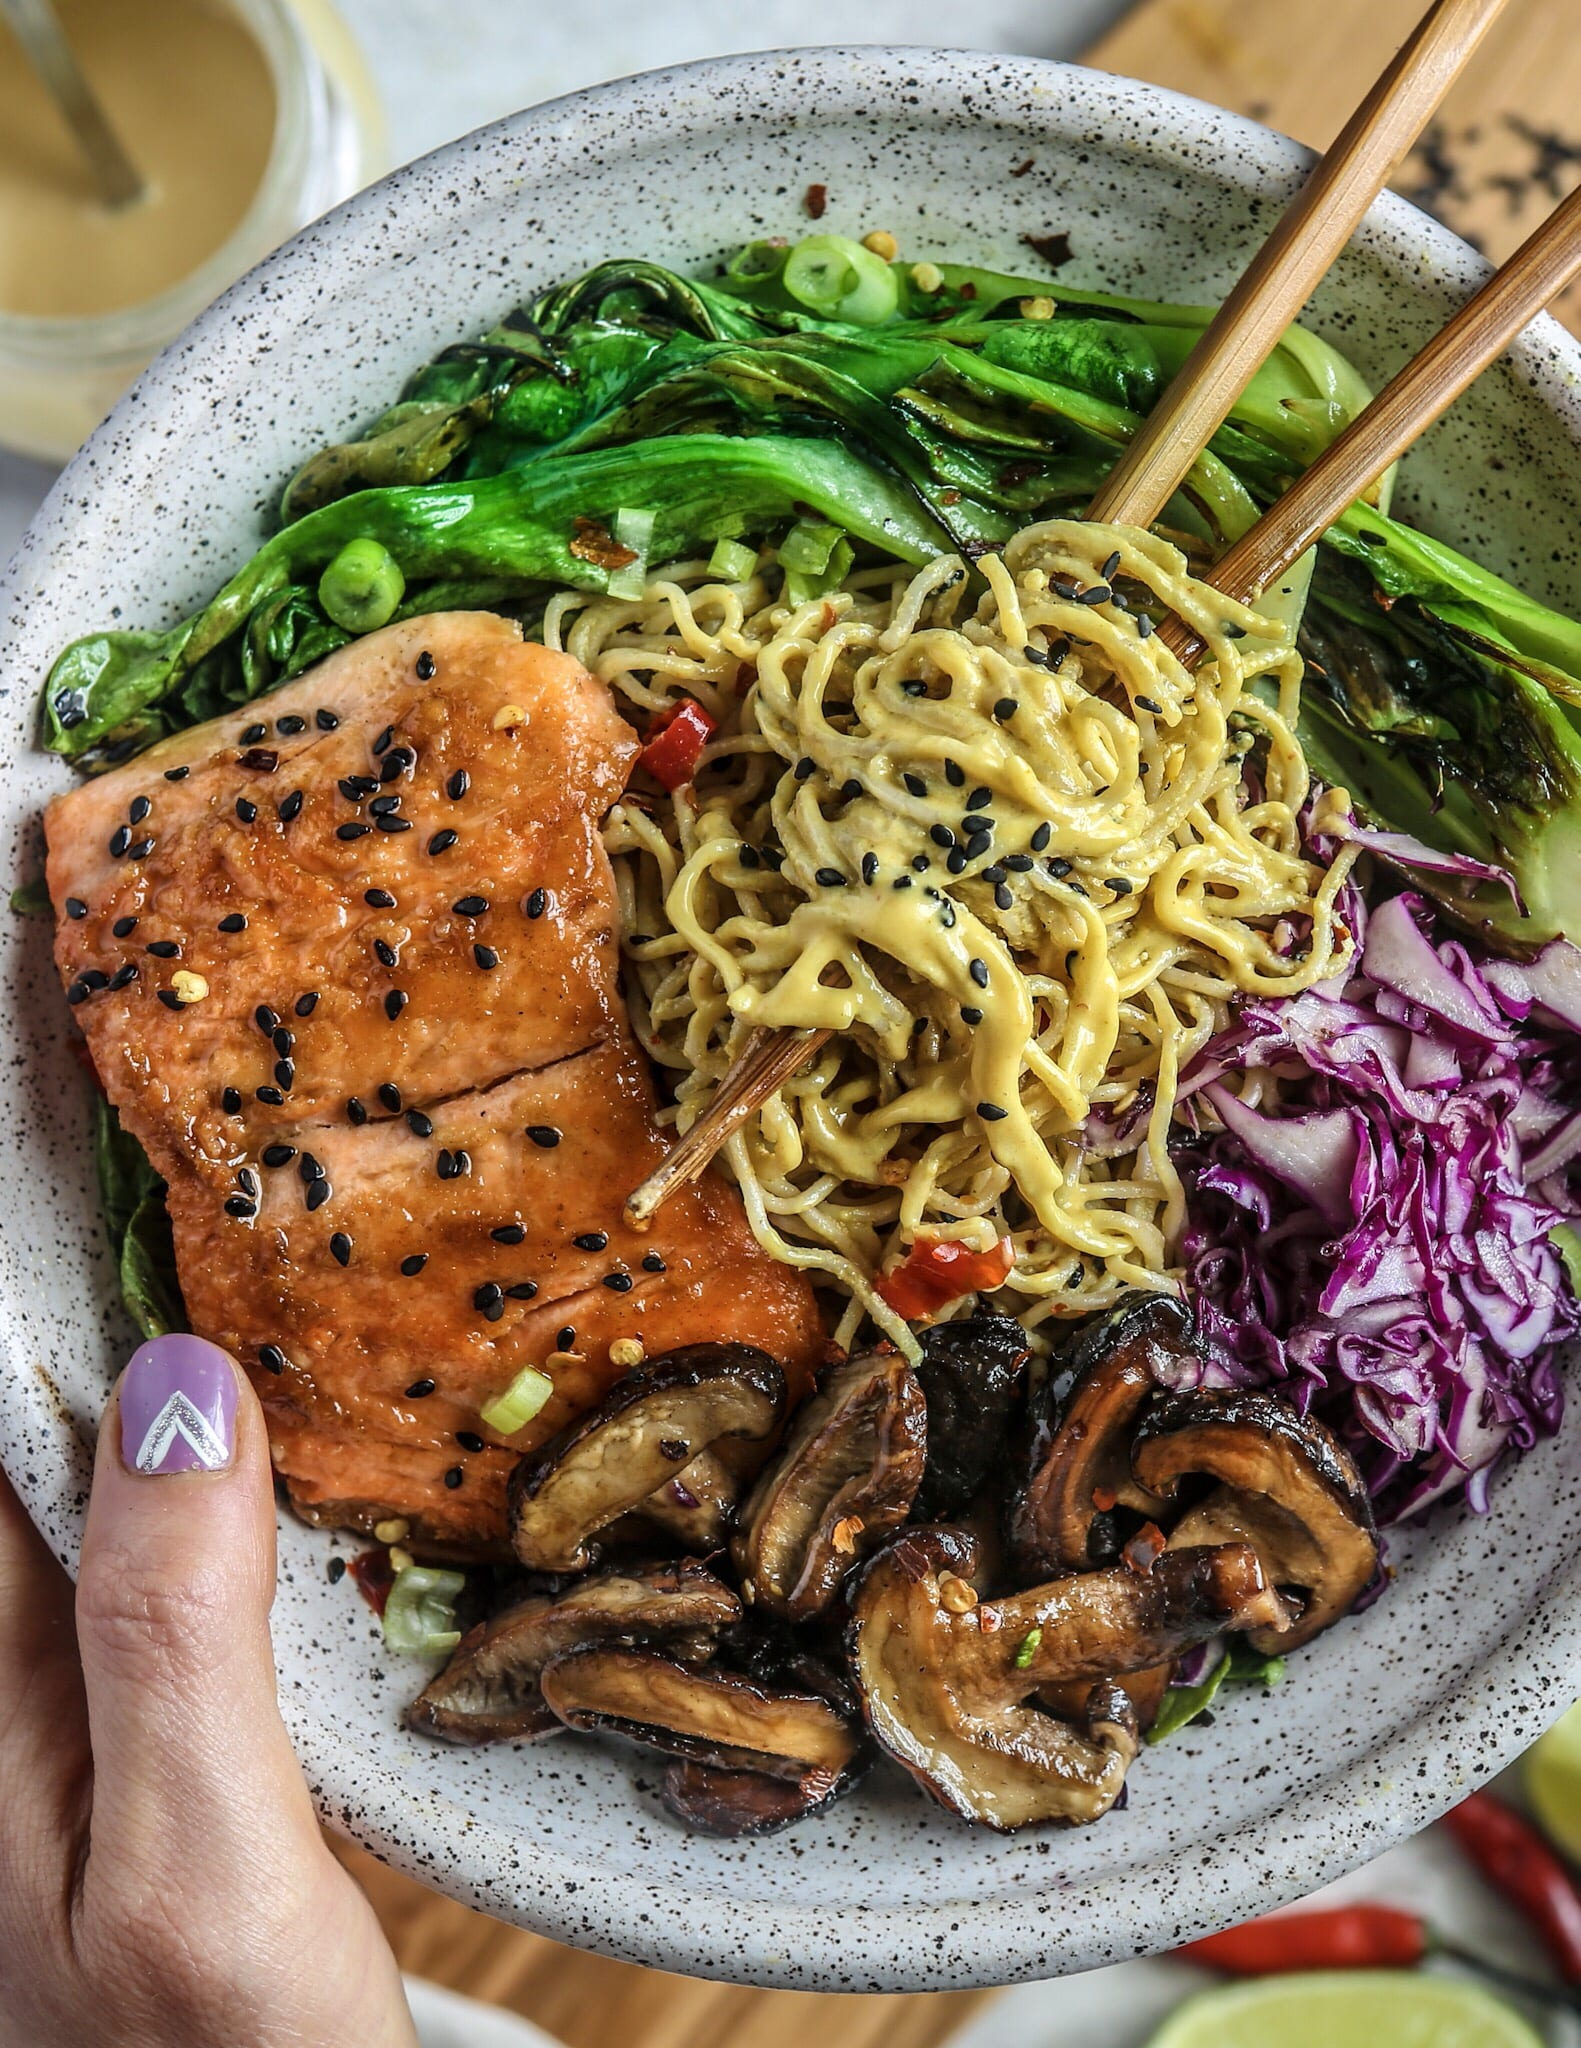 Creamy Turmeric Sesame Tahini Noodles with Glazed Salmon and Veggies